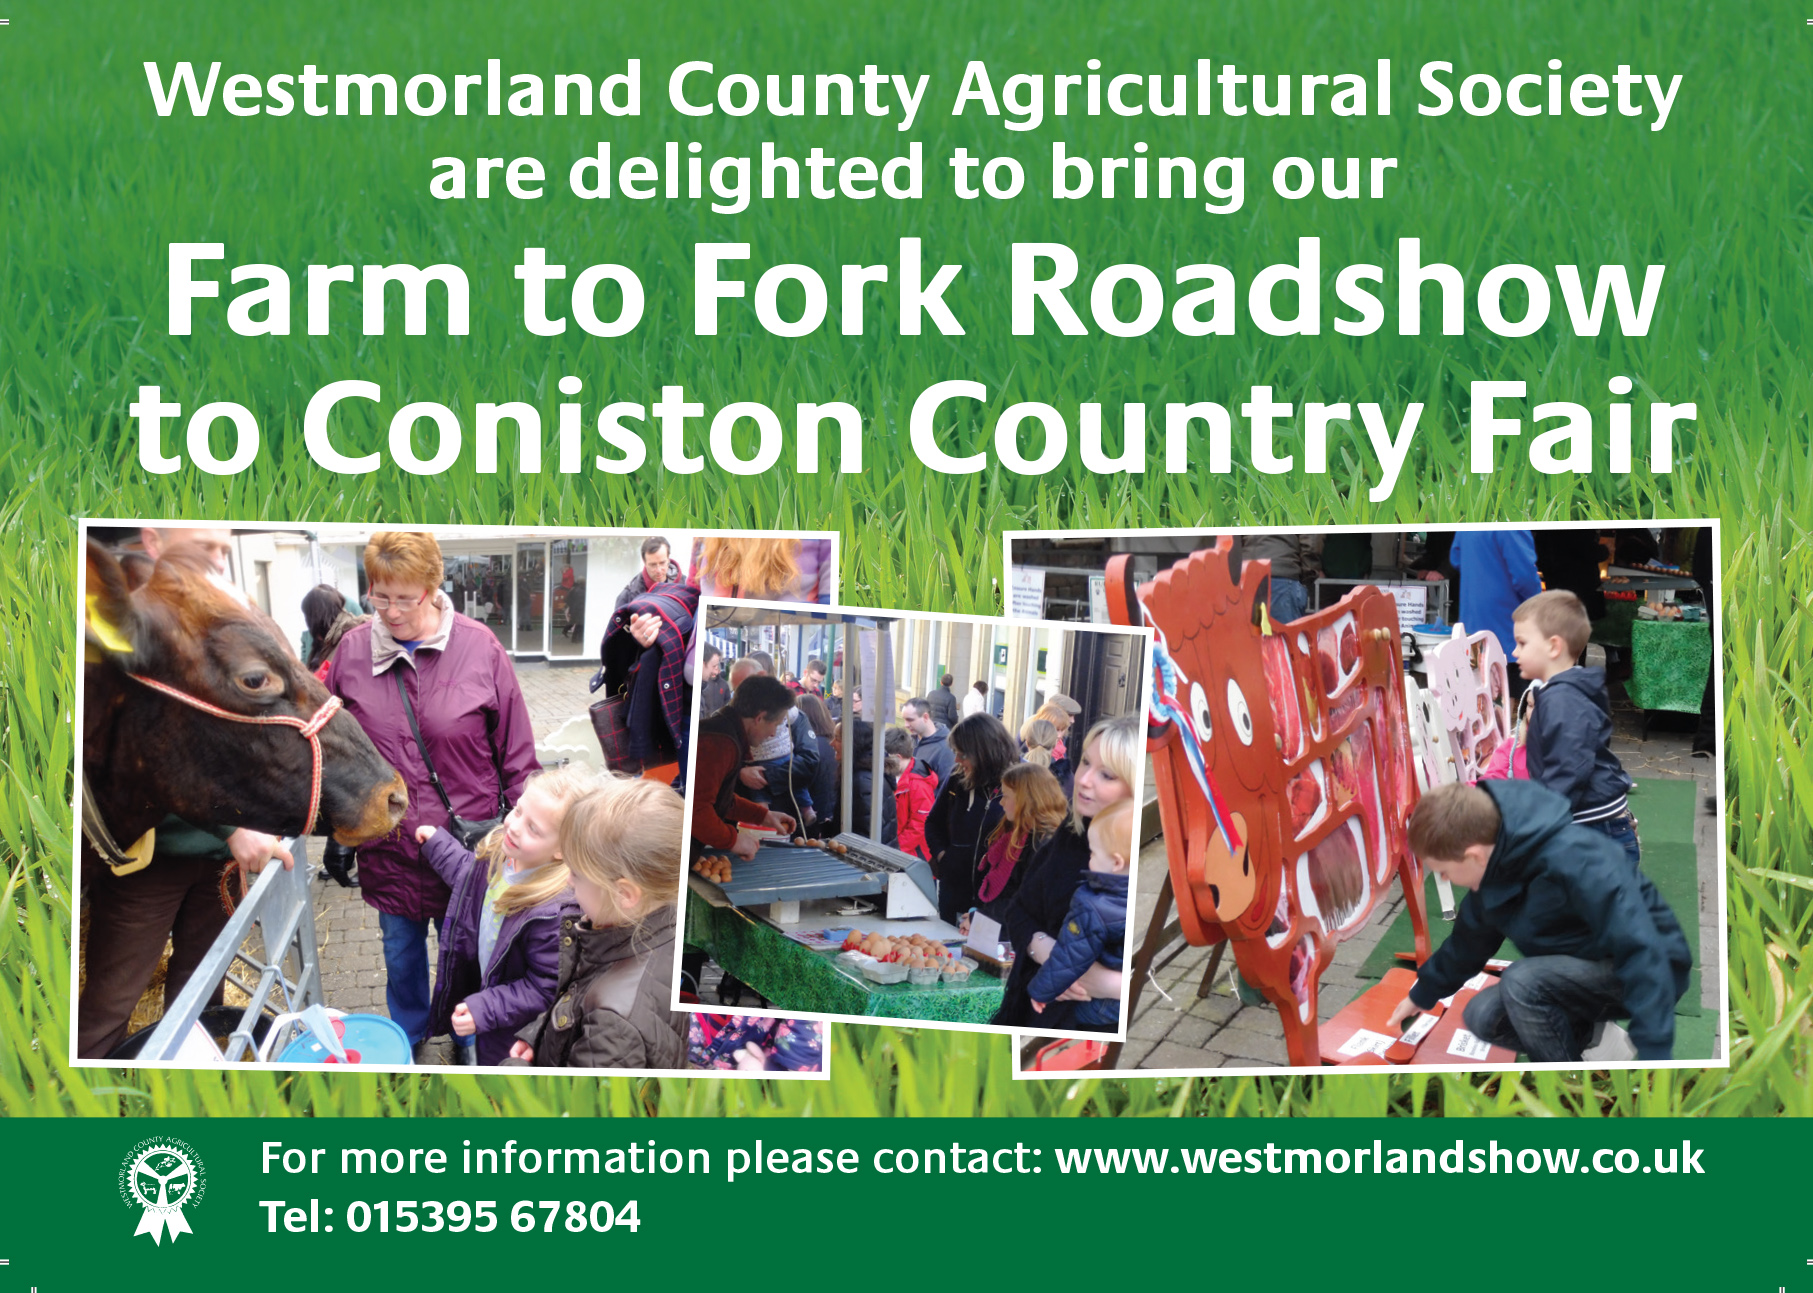 Westmorland Agricultural Society Farm to Fork